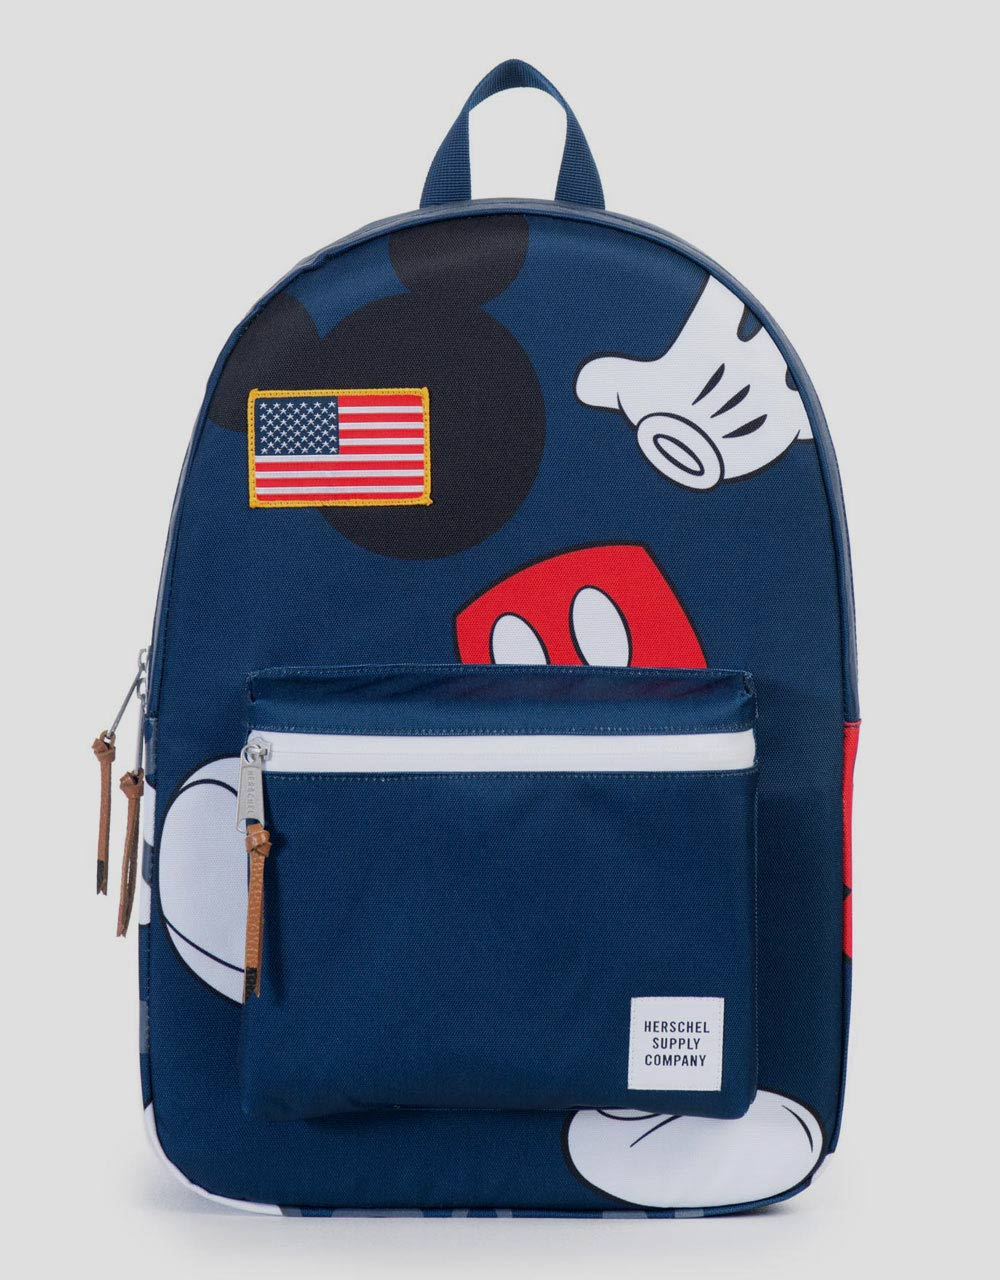 Herschel Supply Classic Backpack - Mickey Mouse (navy) - Limited Edition